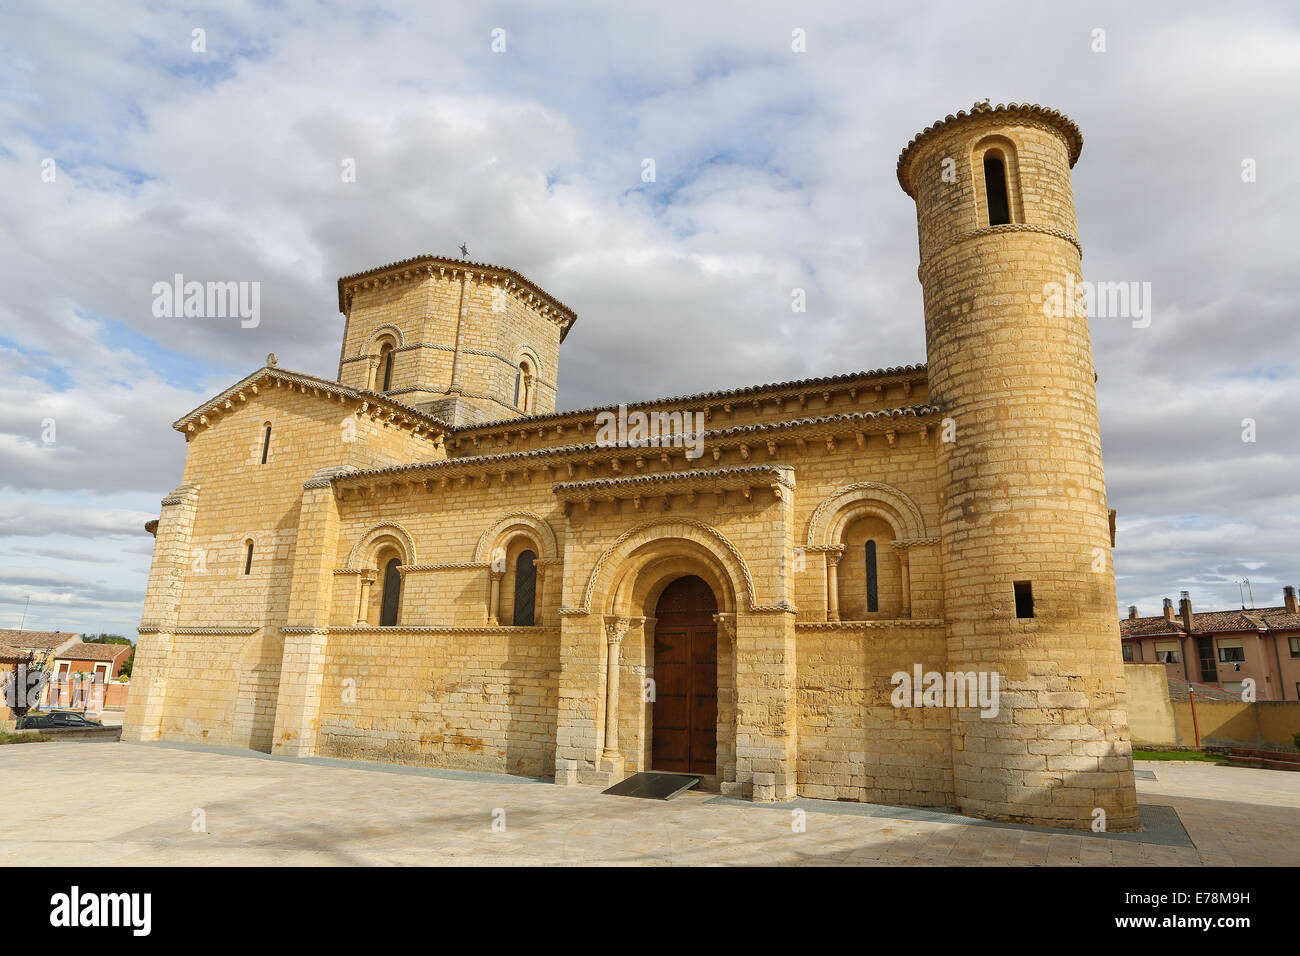 Famous Romanesque church of St Martin of Tours (11th Century) in Fromista, Castille and Leon, Spain. Stock Photo